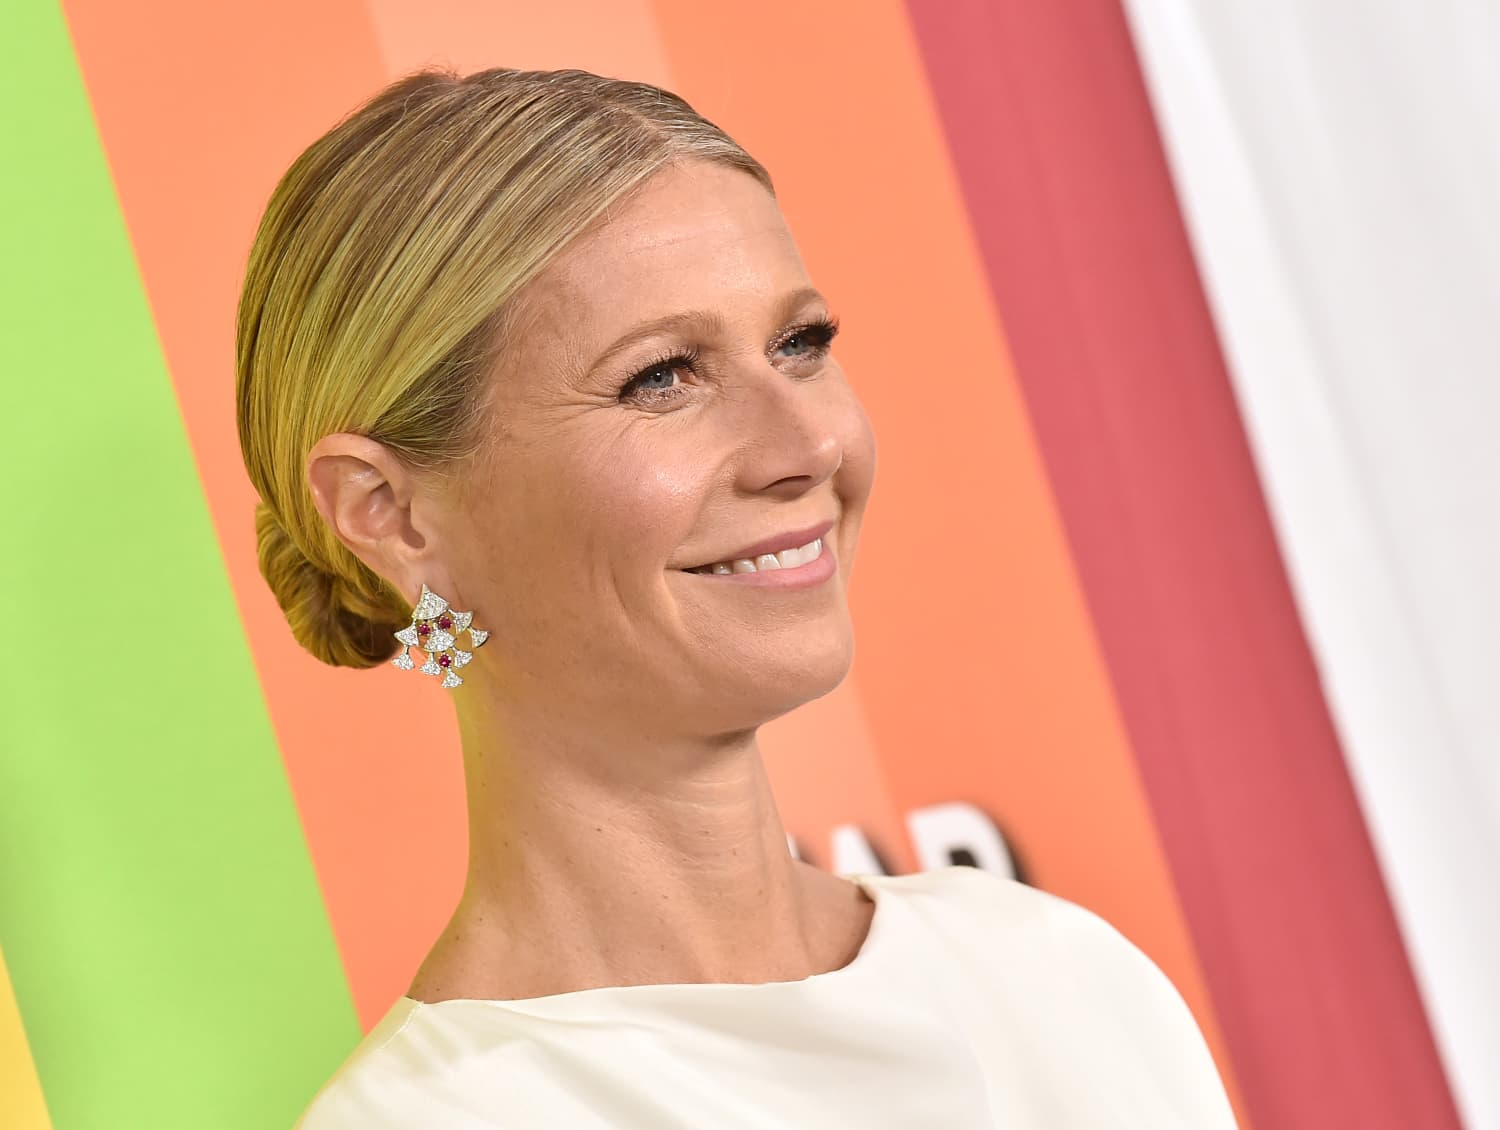 Goop's 2019 Gift Guide Ranges from $6 to $1.3M, and Includes Everything from Toilet Paper to a Trip to the Moon